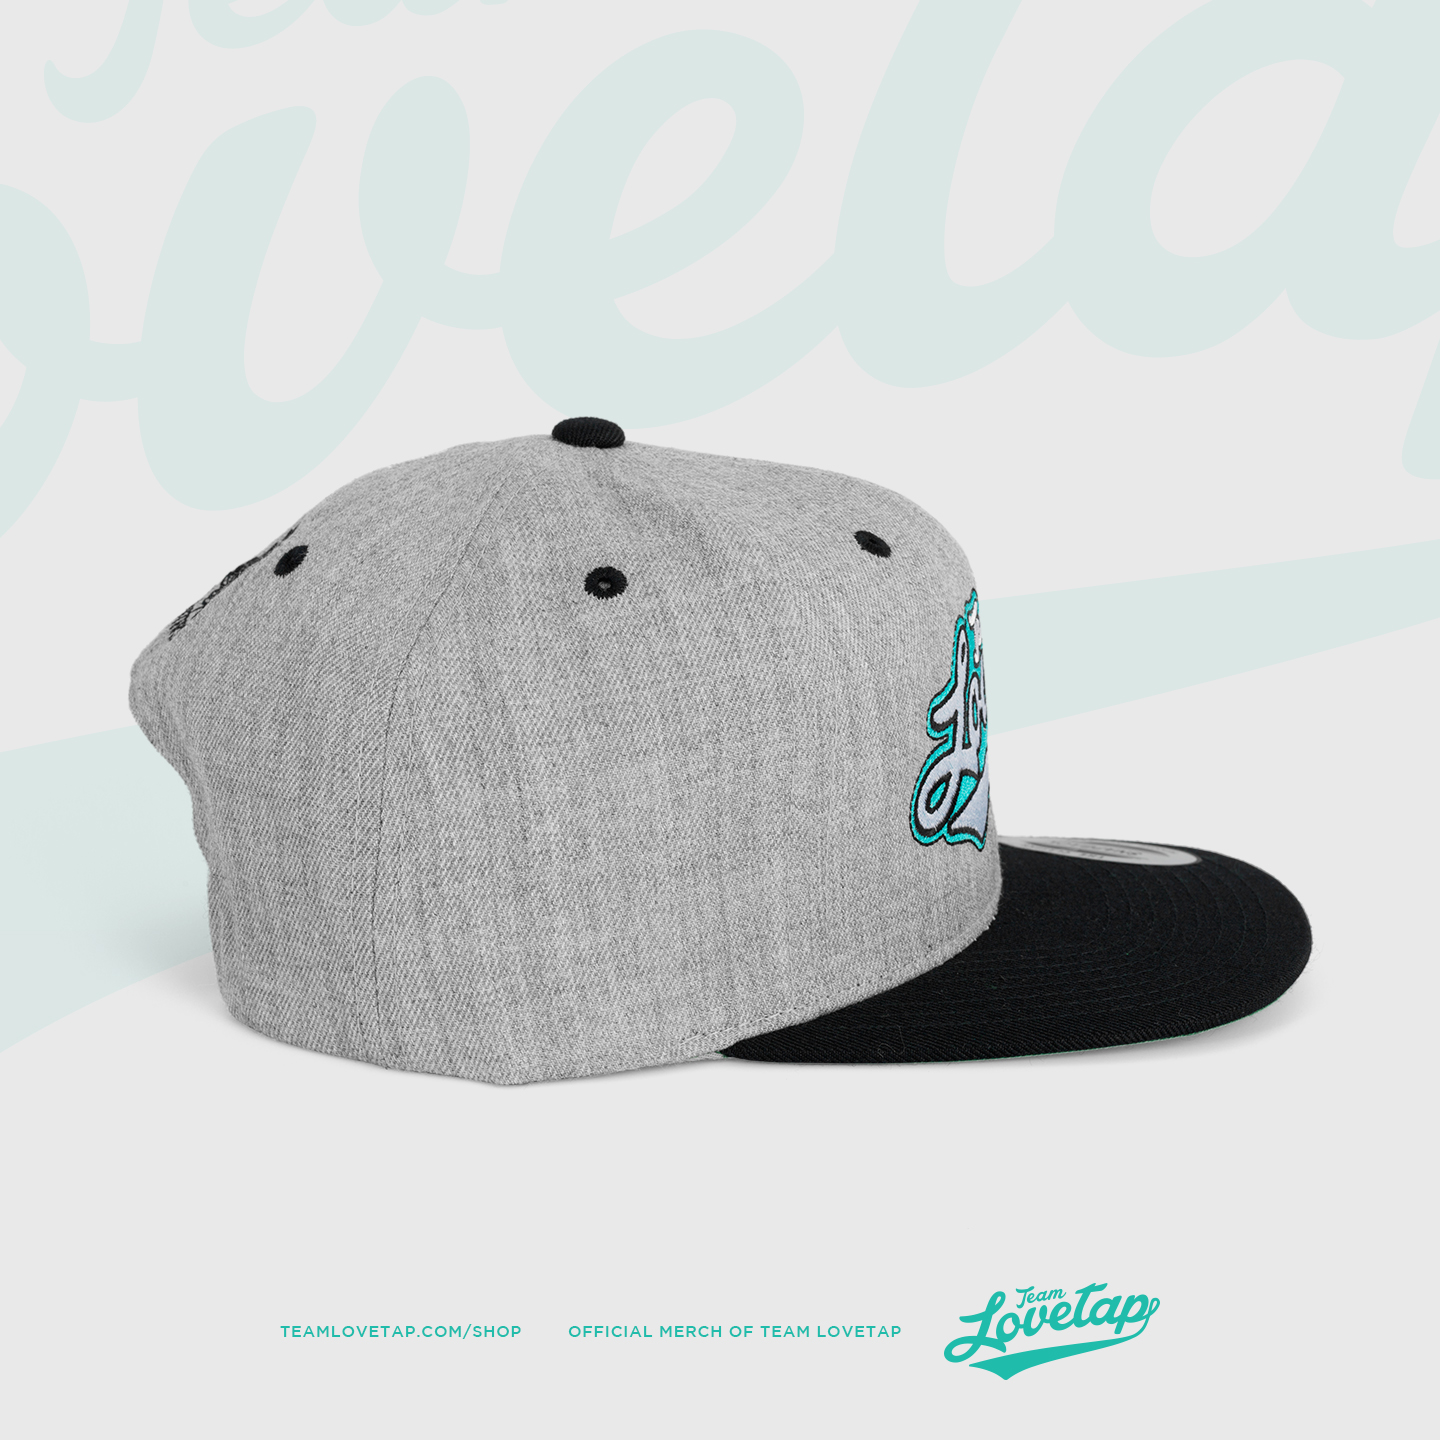 snapback_black_lightgray_teamlovetap_05.jpg